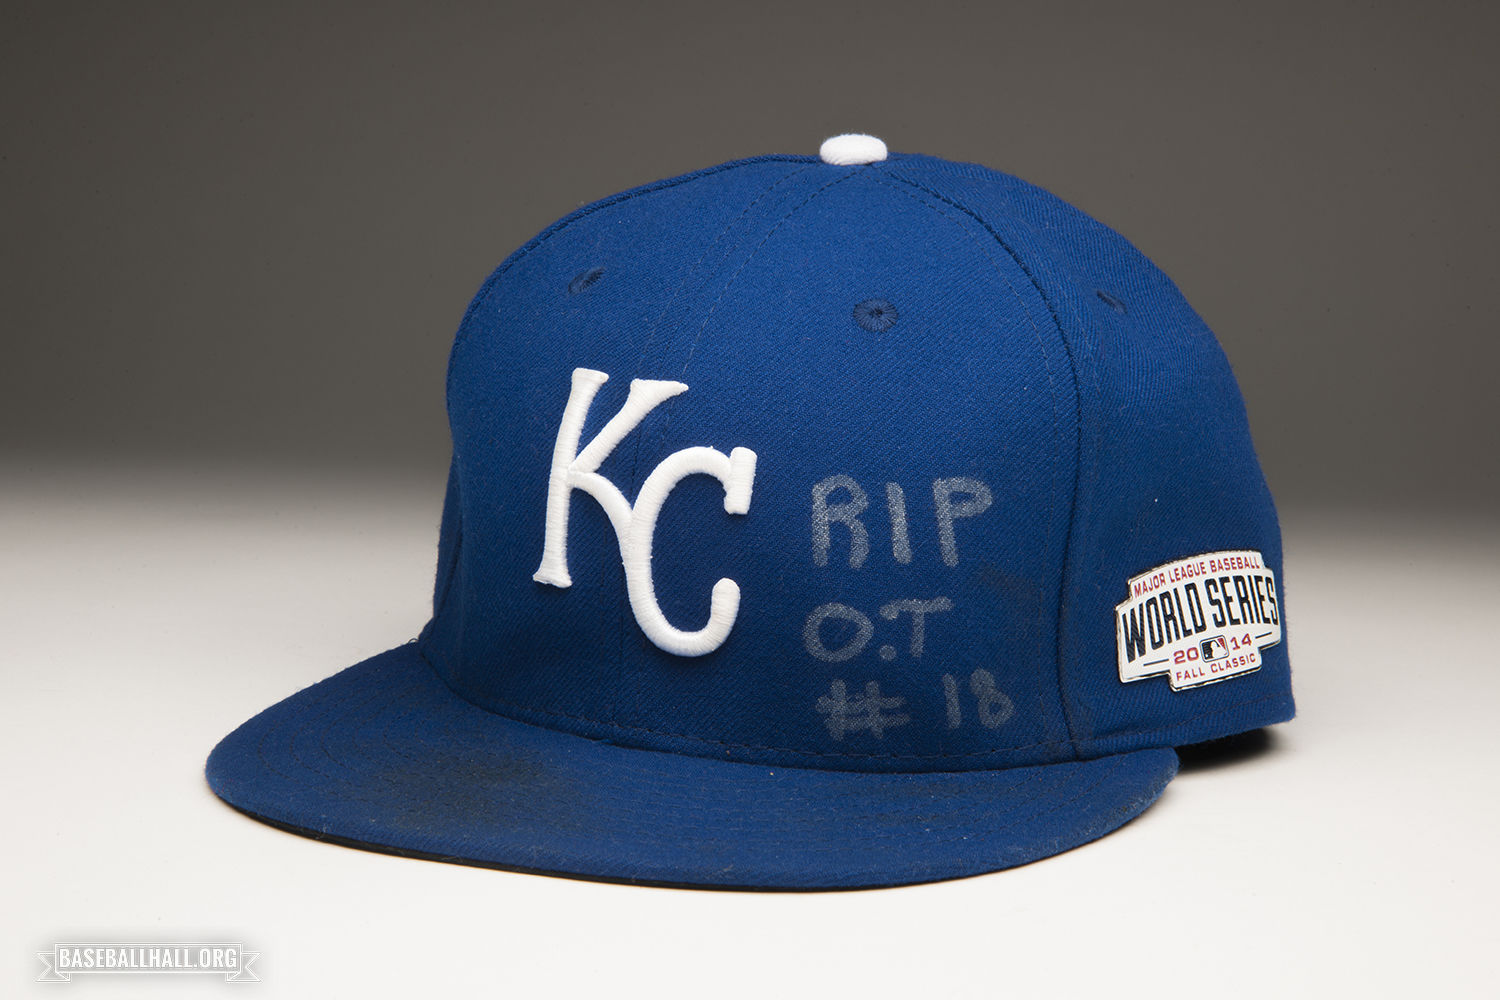 81f7aca62 Yordano Ventura donated his cap to the Hall of Fame at the conclusion of the  2014 World Series. (Milo Stewart Jr.   National Baseball Hall of Fame)